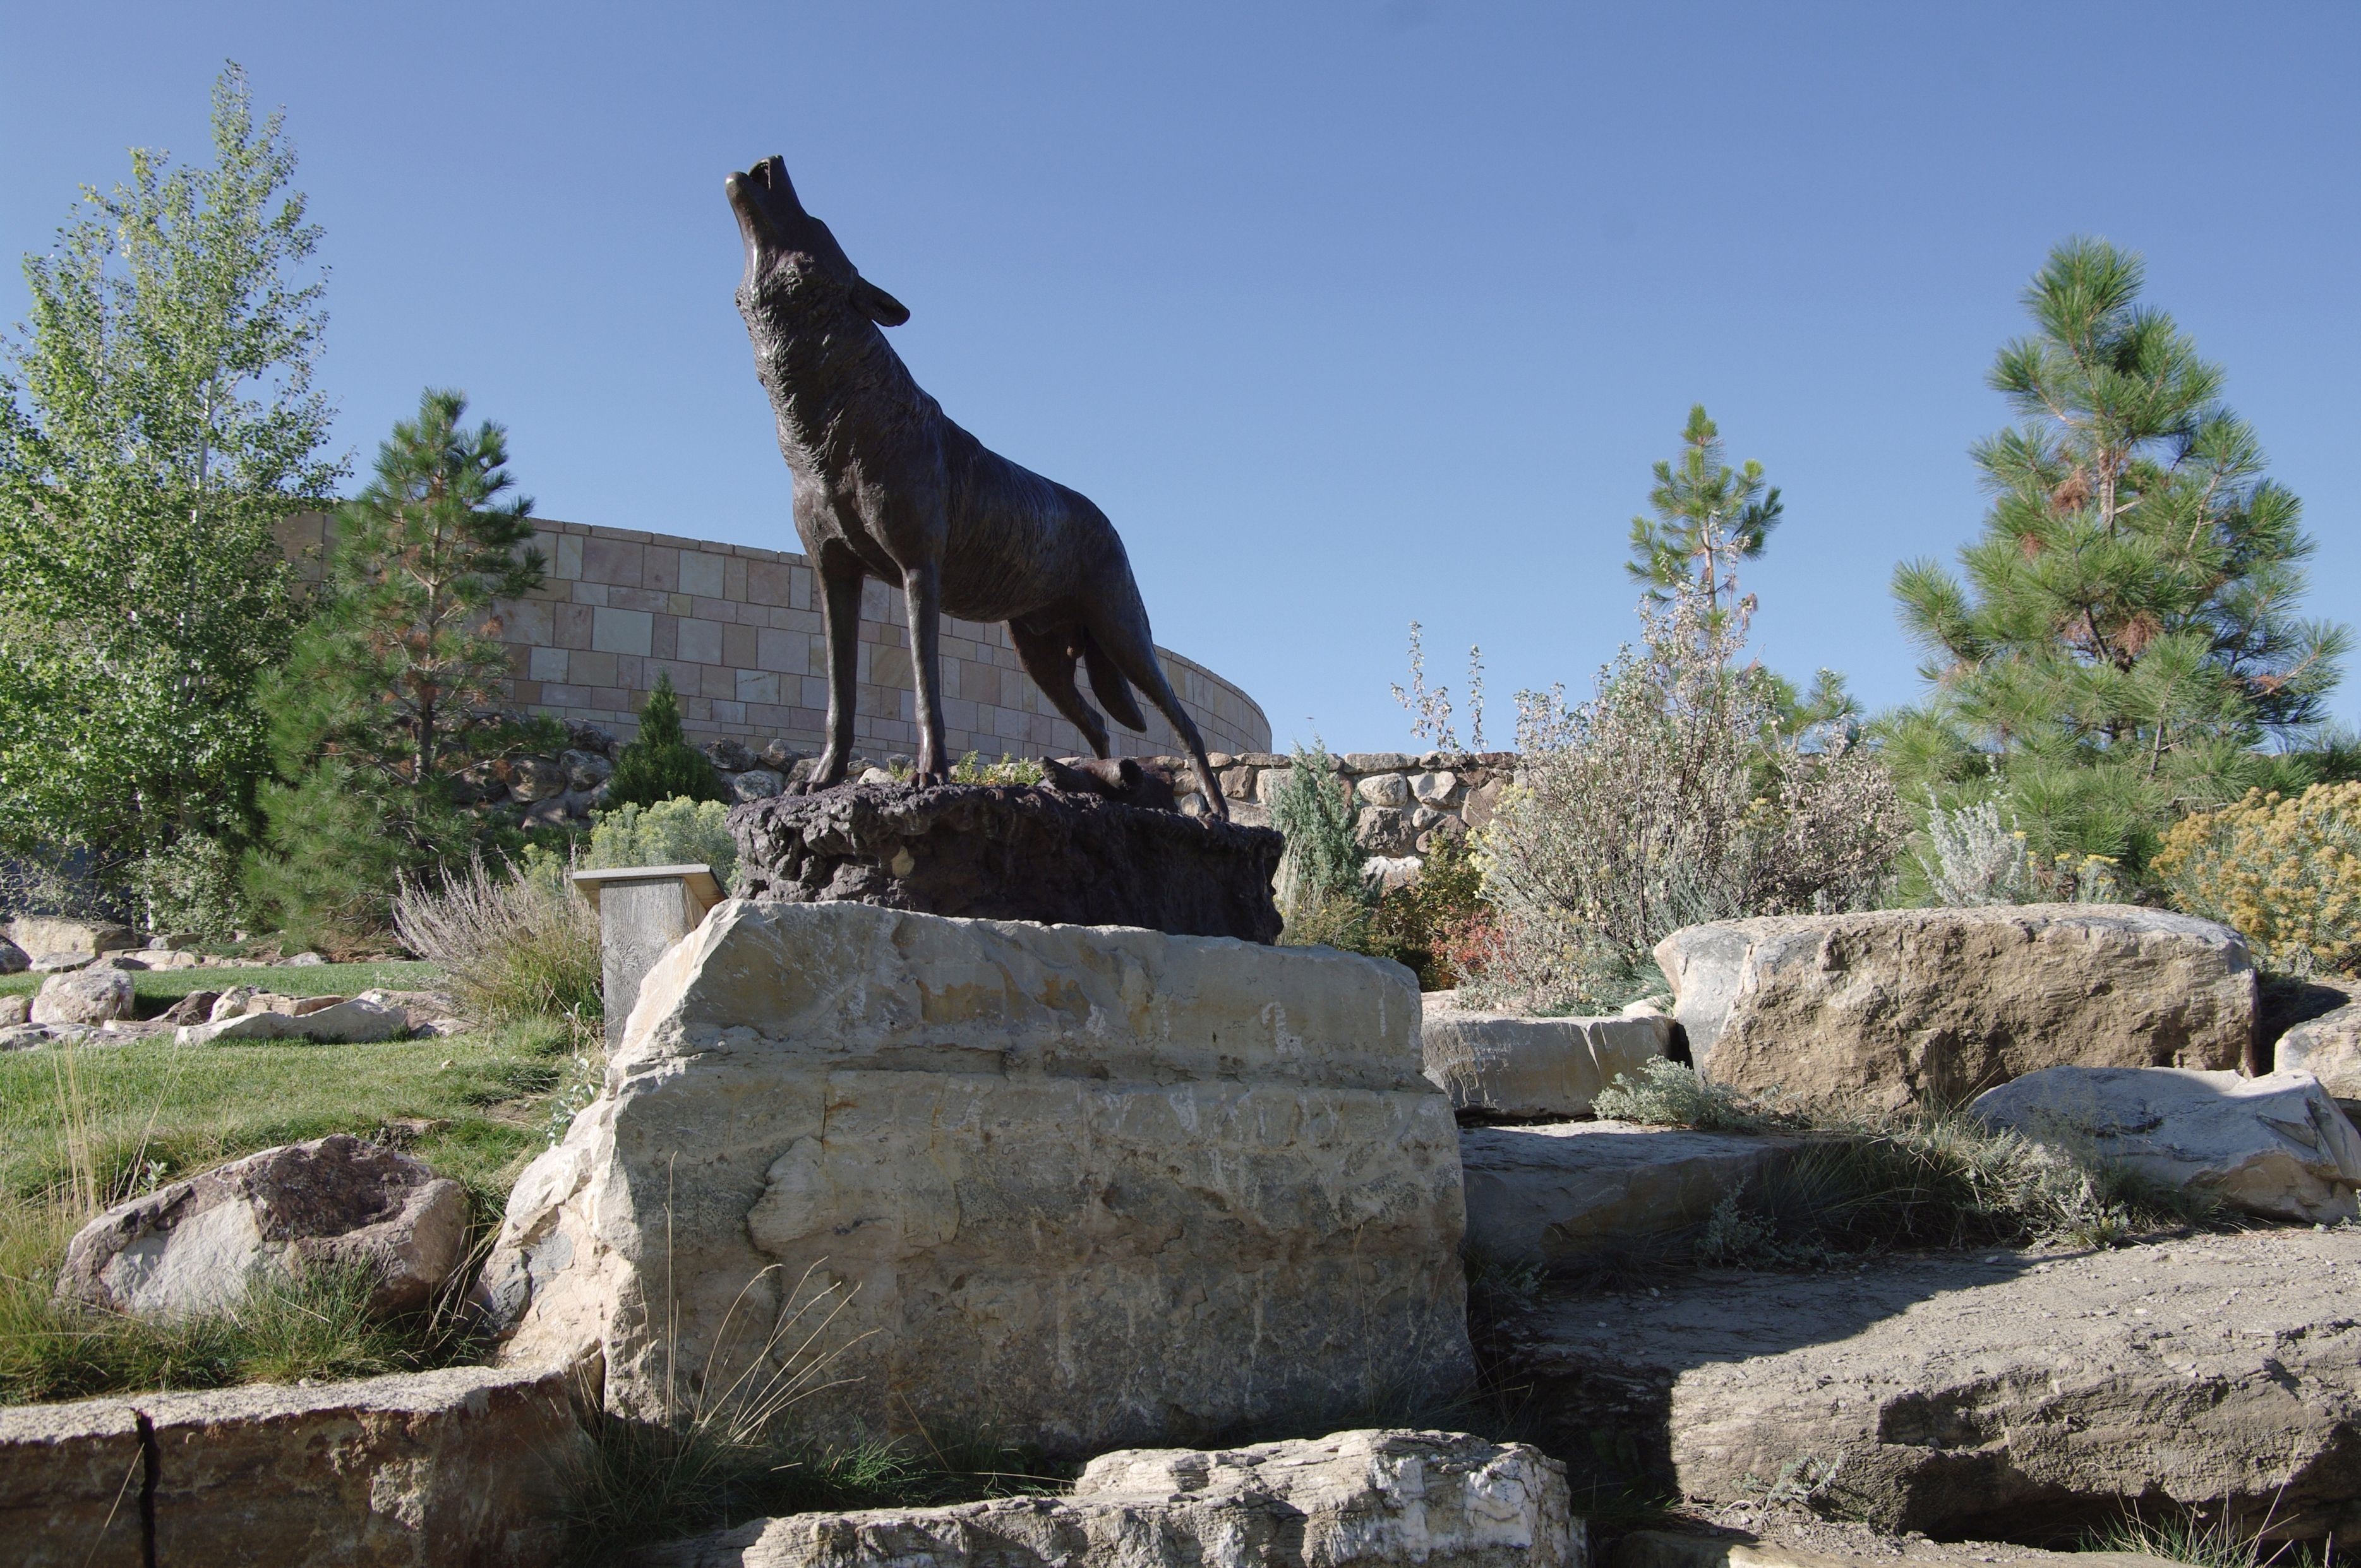 A statue of a wolf howling.